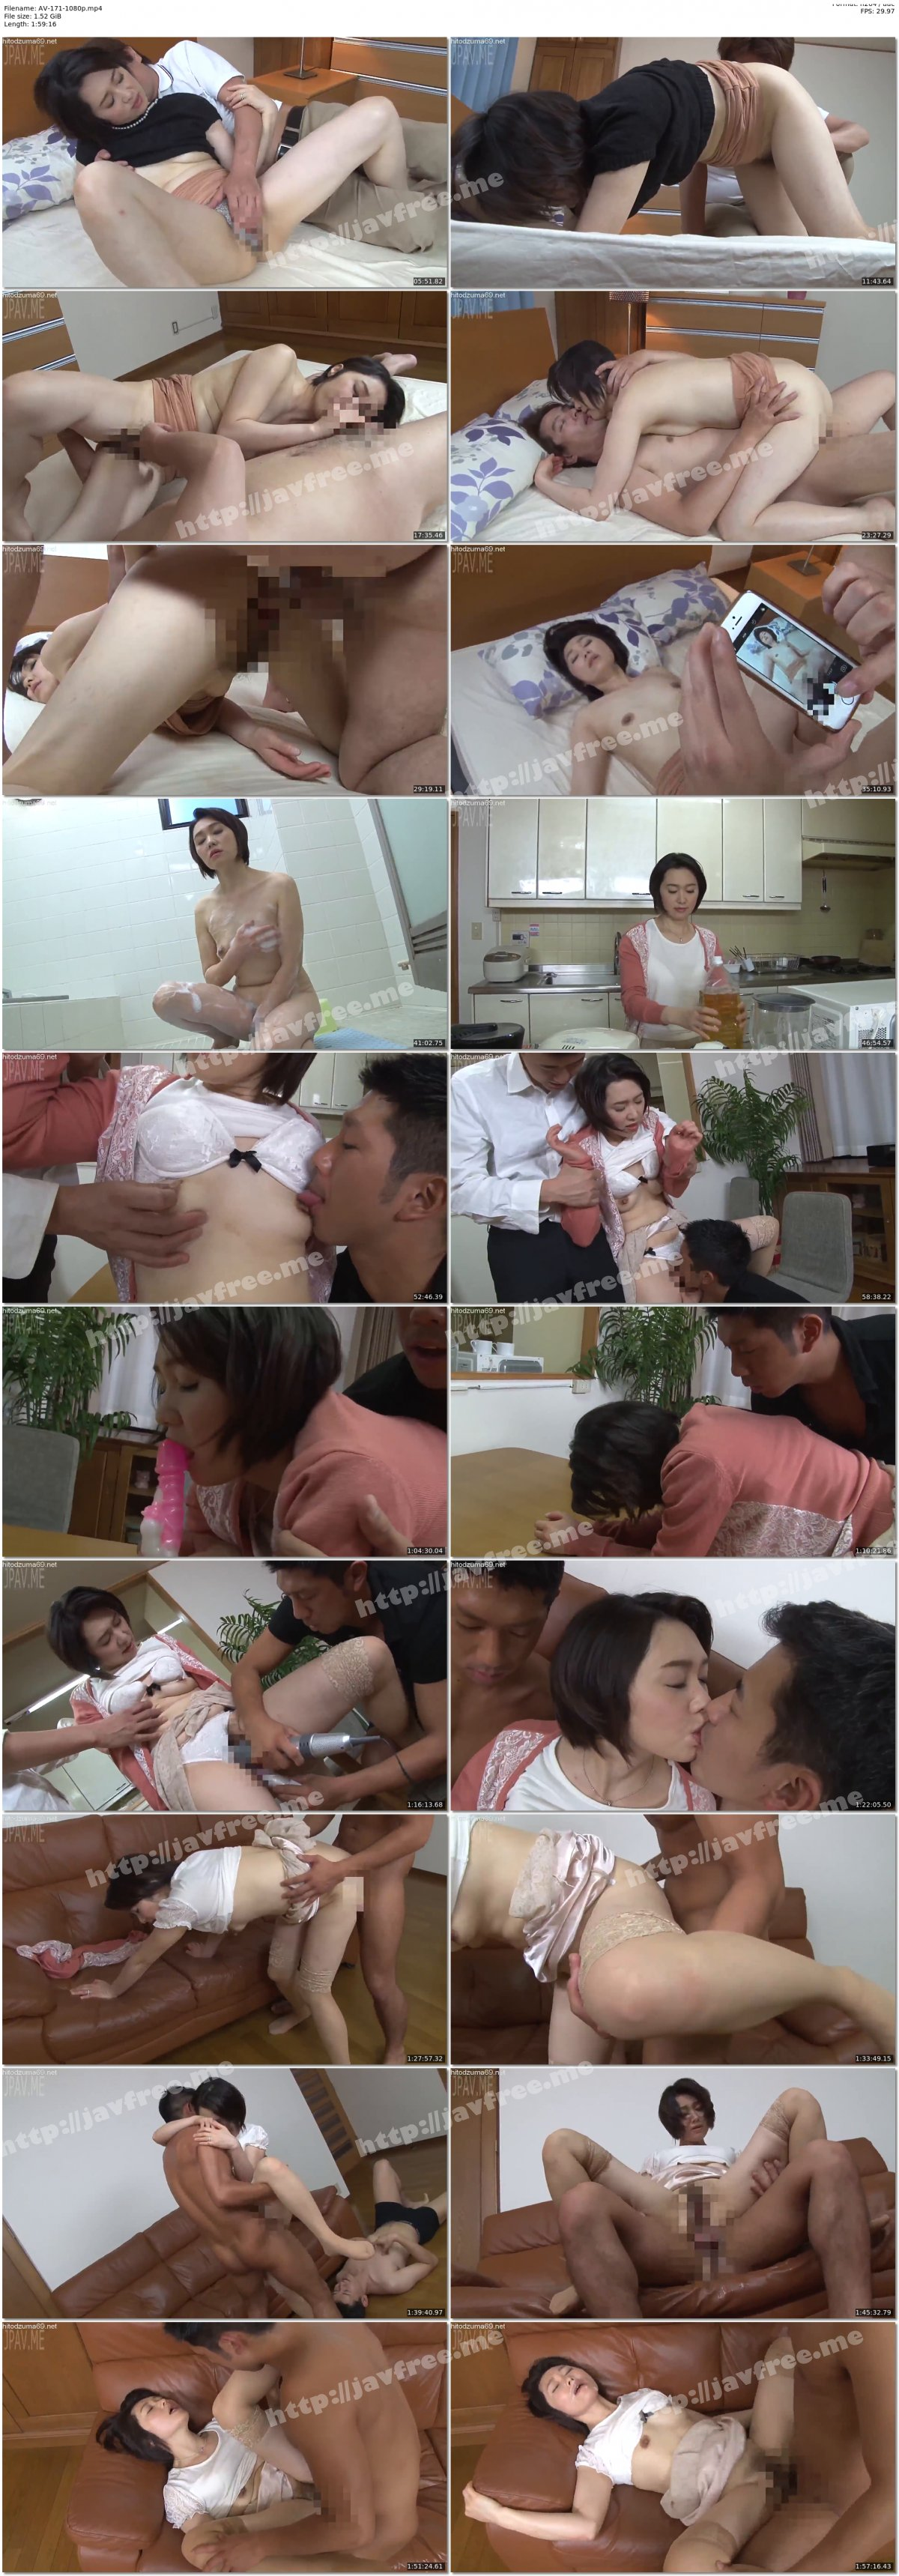 [HD][AV-171] 同級生の母親 広永有美 - image AV-171-1080p on https://javfree.me